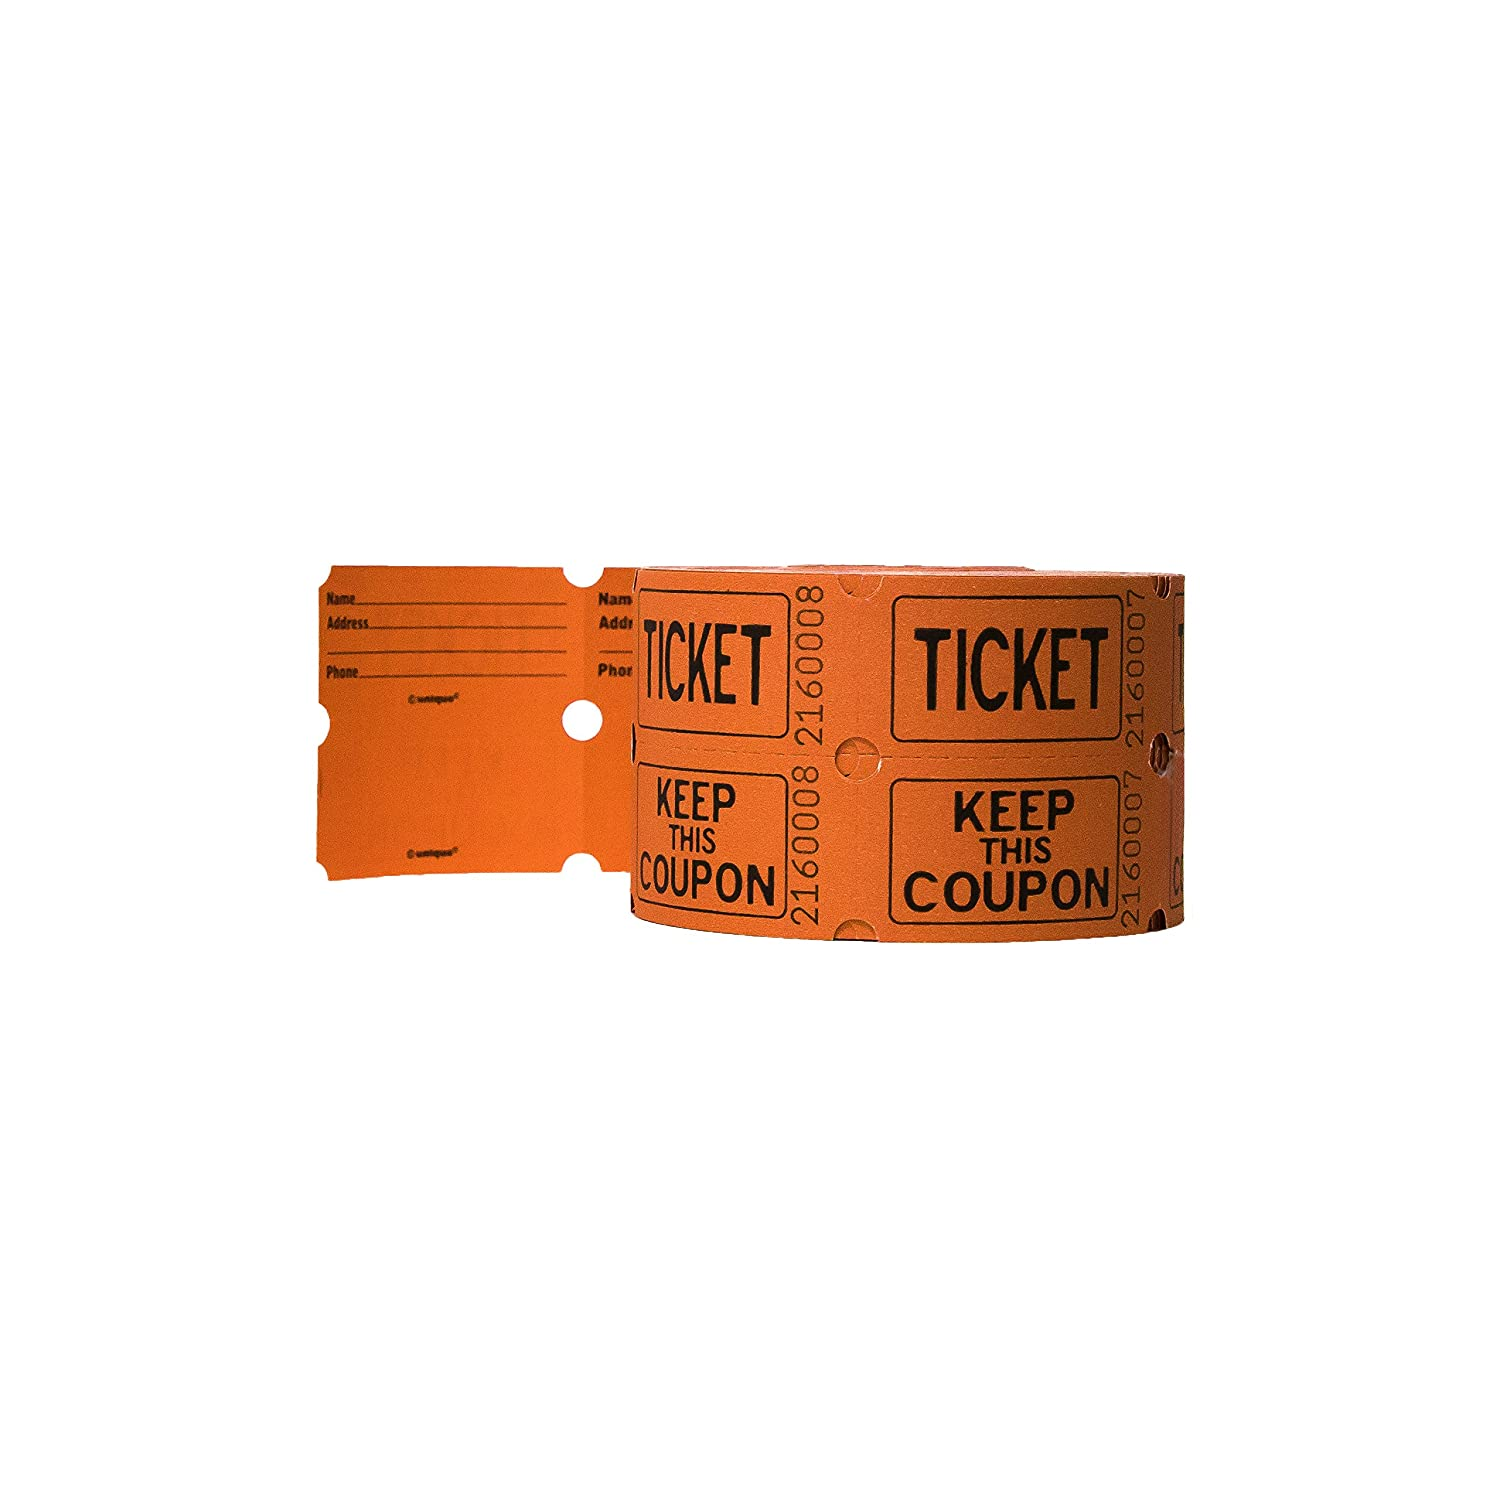 Amazon.com: Double Roll of Raffle Tickets, 500ct (Colors May Vary ...